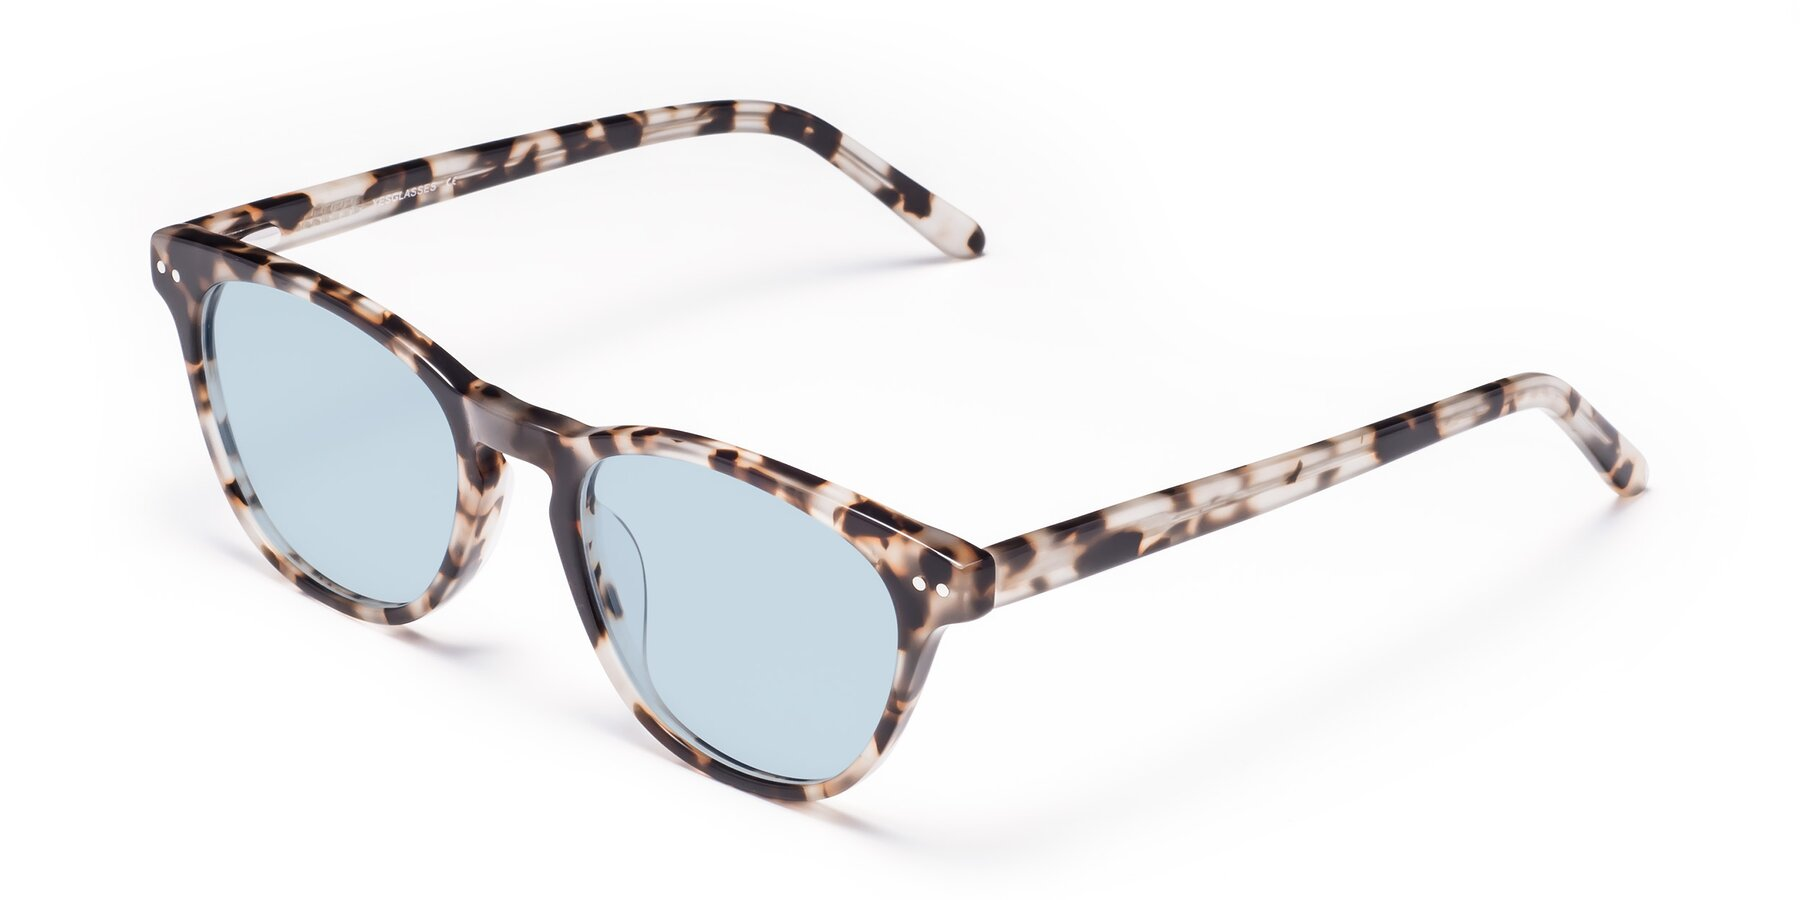 Angle of Blaze in Tortoise with Light Blue Tinted Lenses